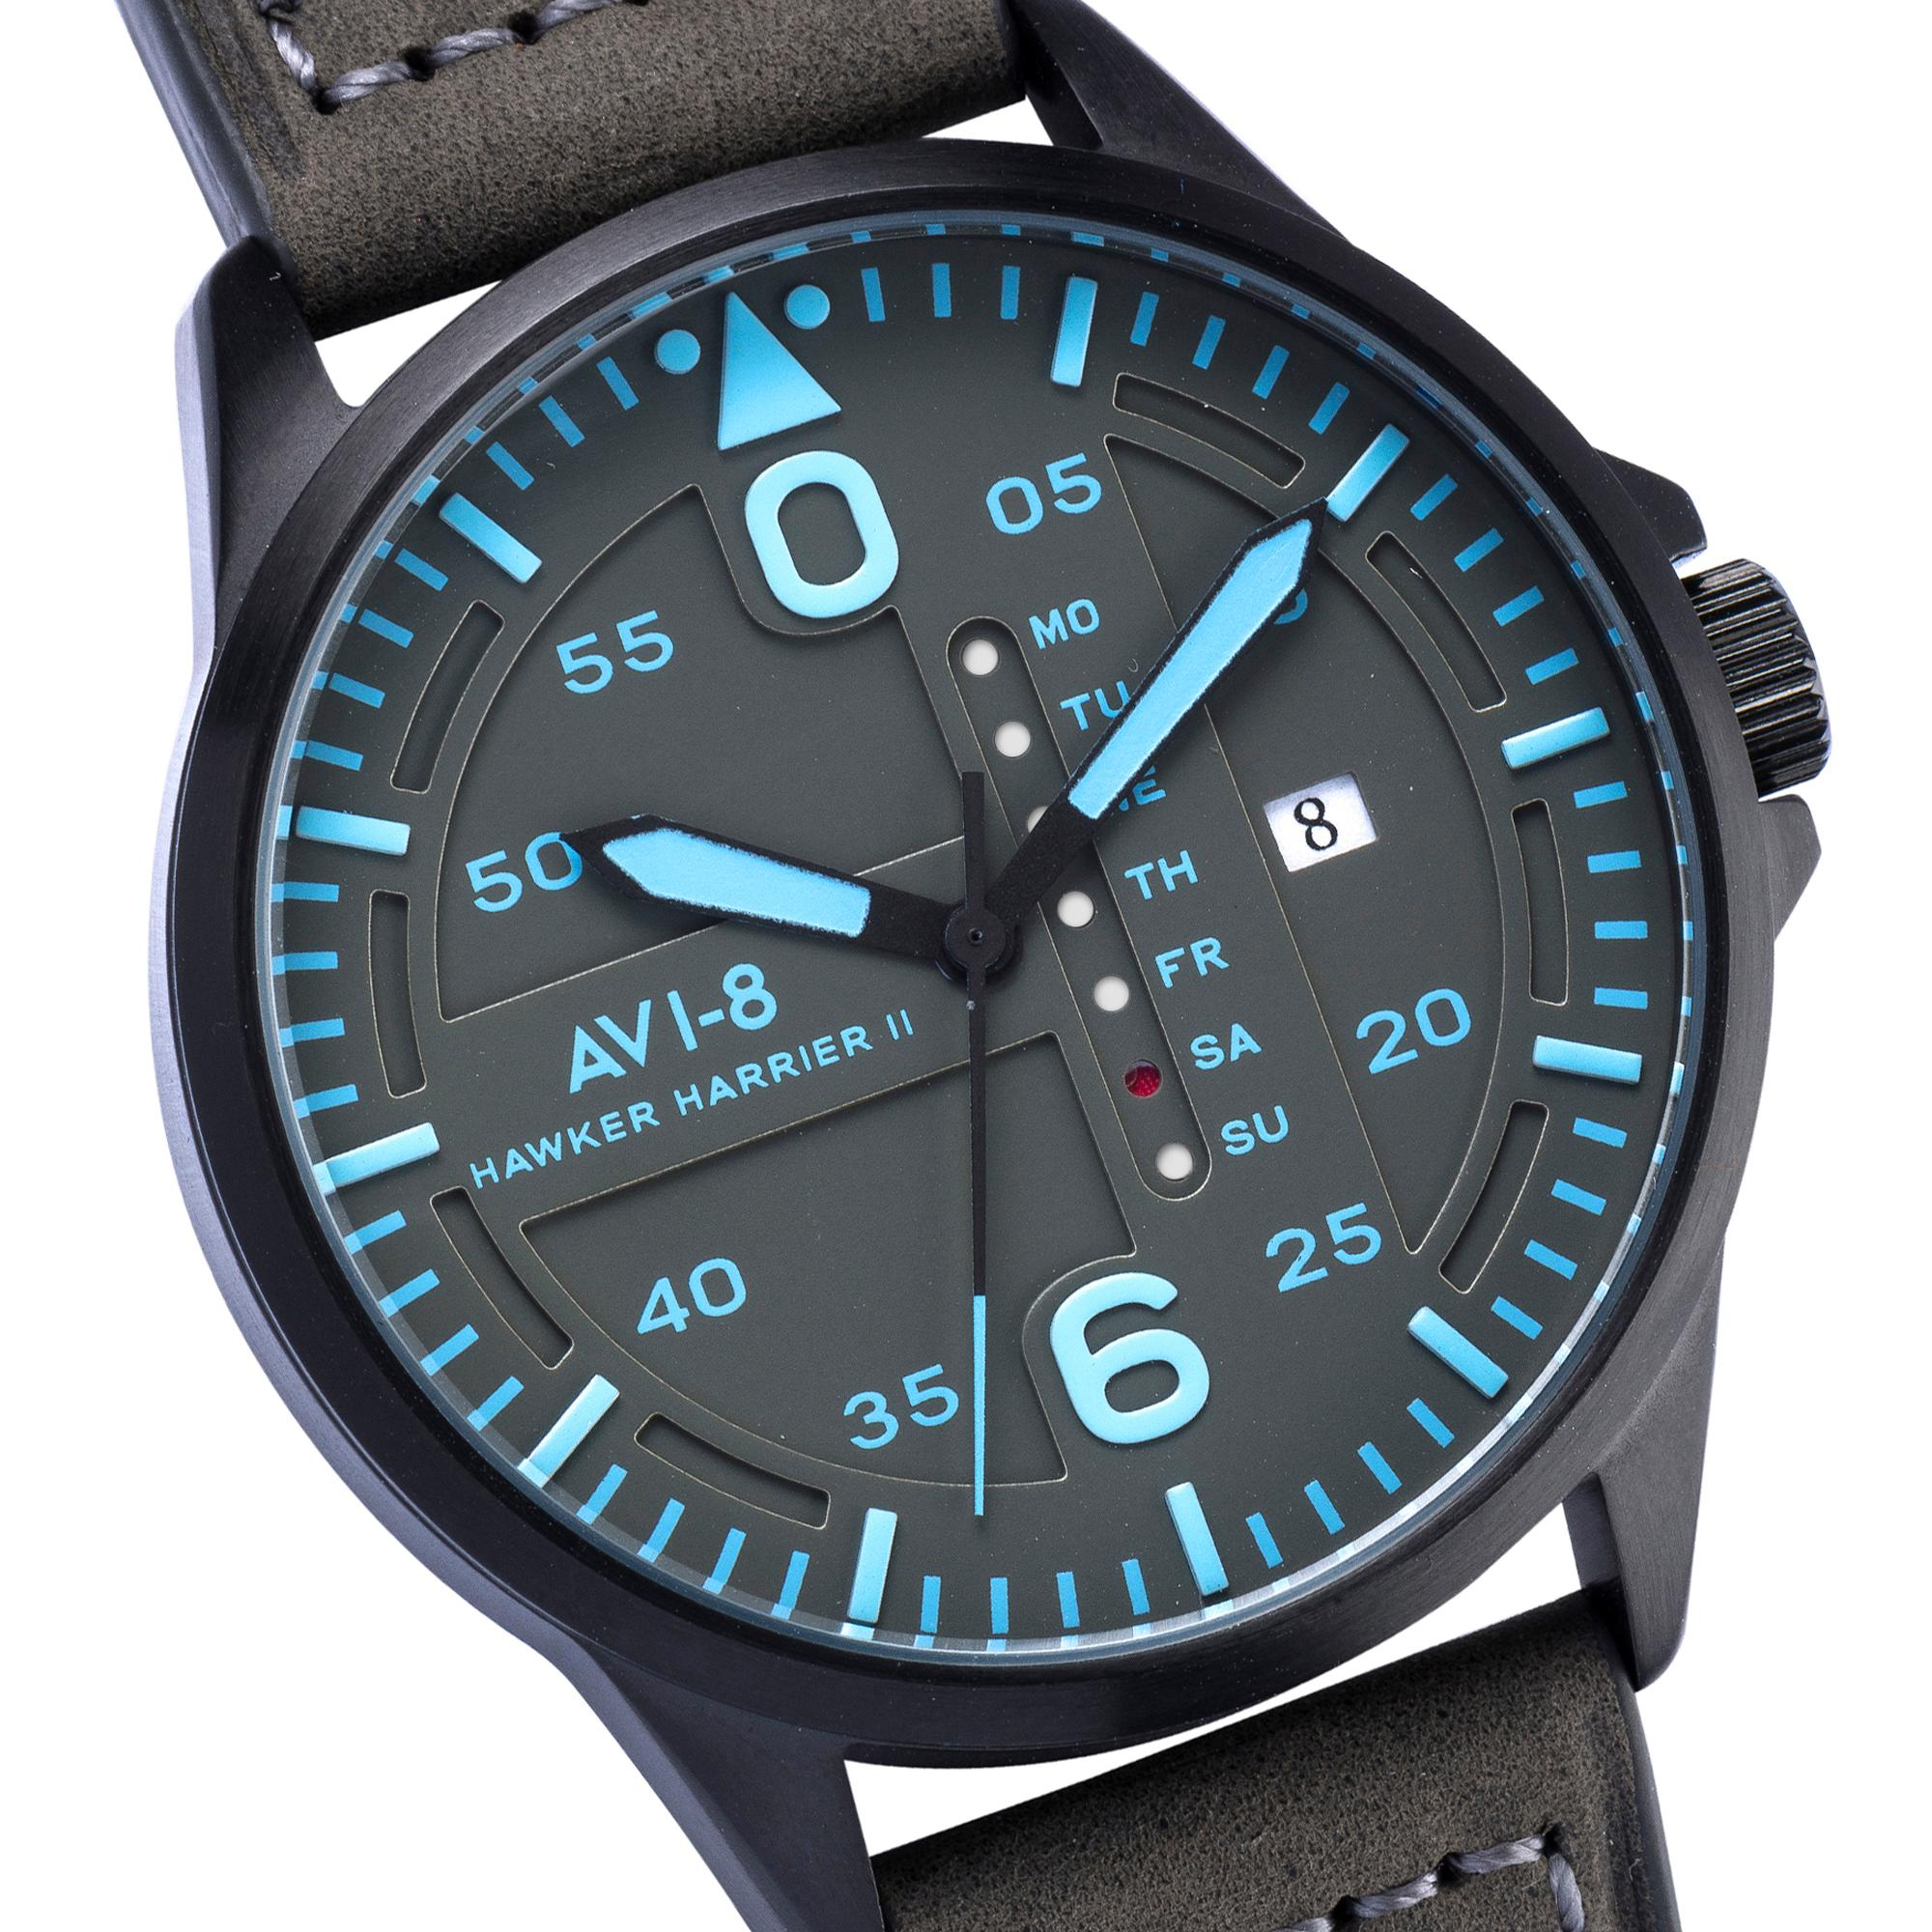 martian com best for aviator smartwatch pilots watches